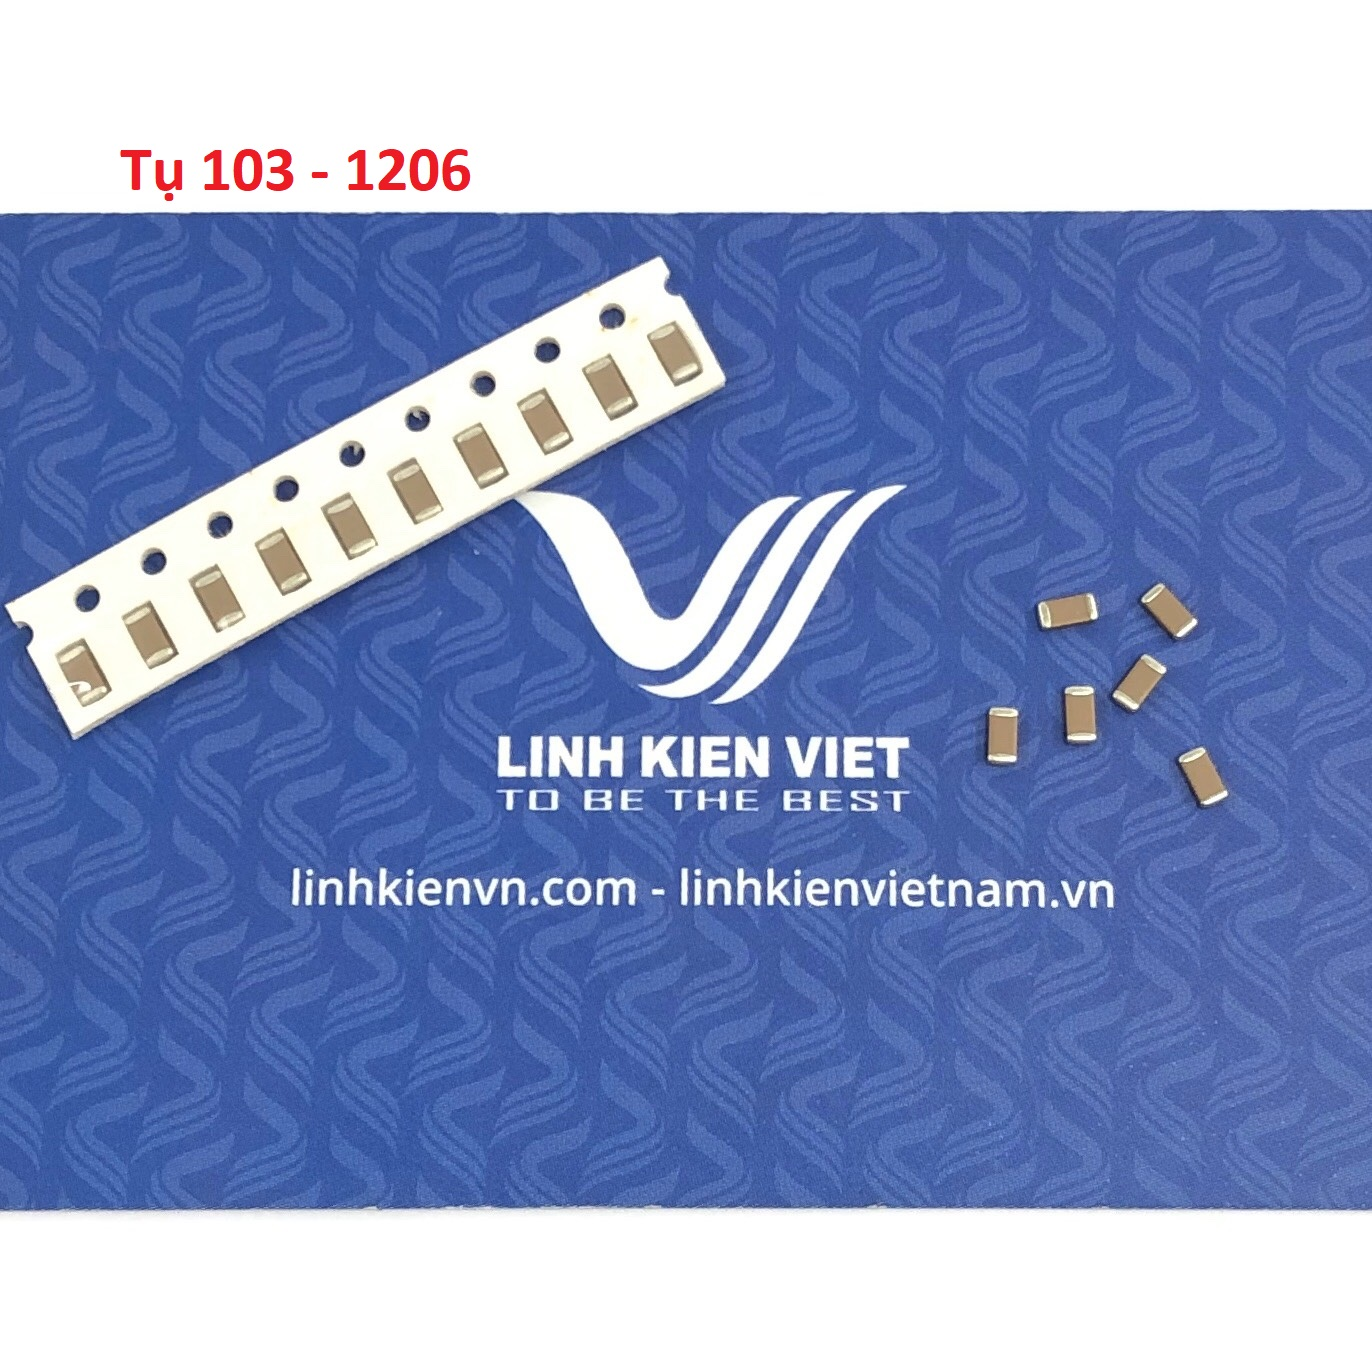 Tụ SMD 103 10nF 1206 - 10 con